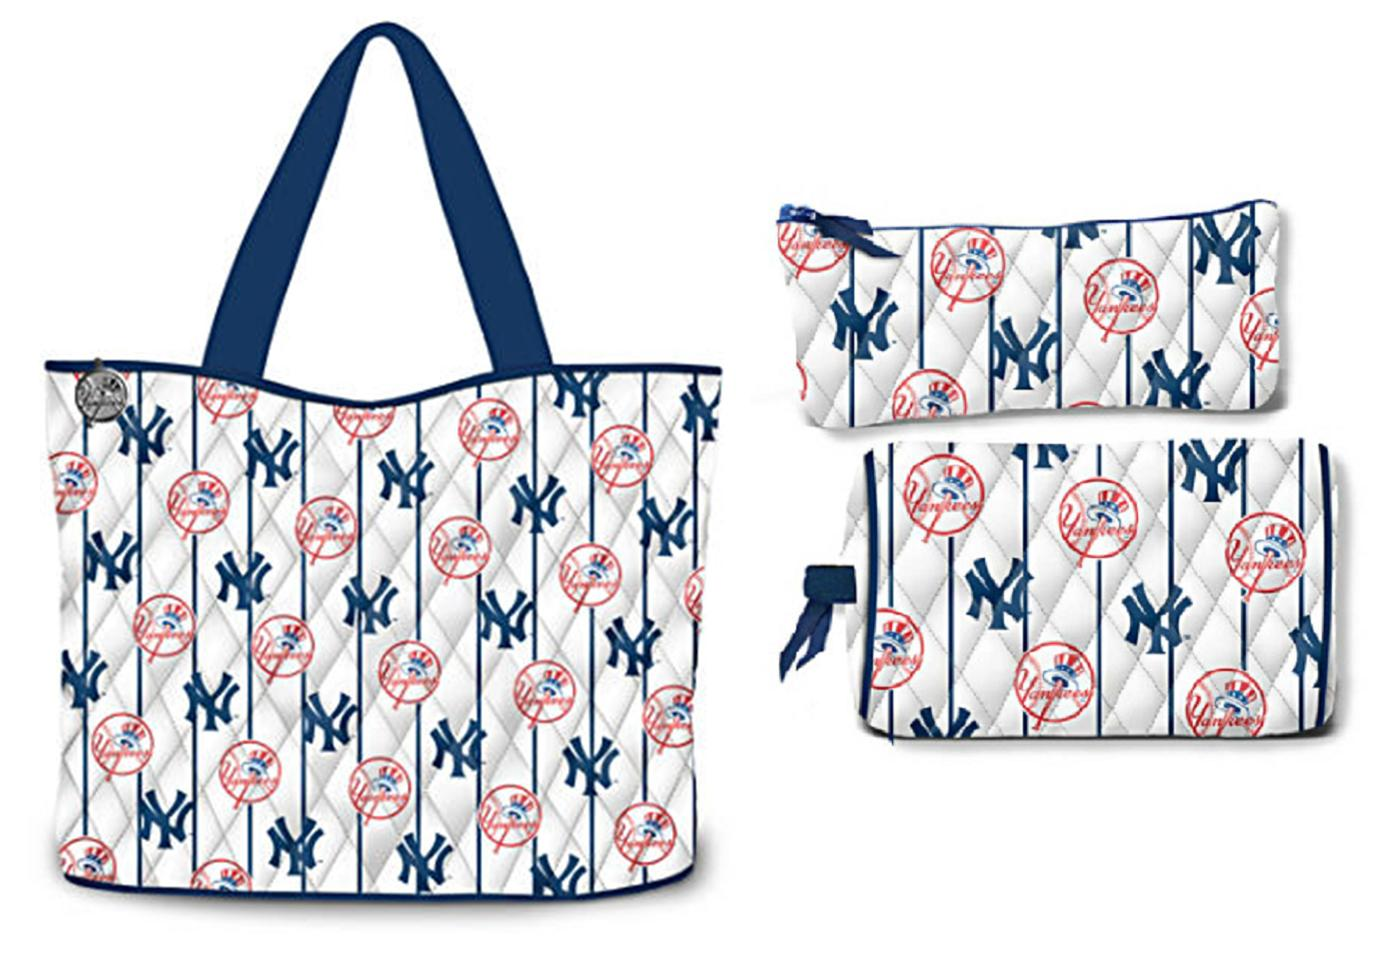 New York Yankees MLB Tote Bag With Cosmetic Cases